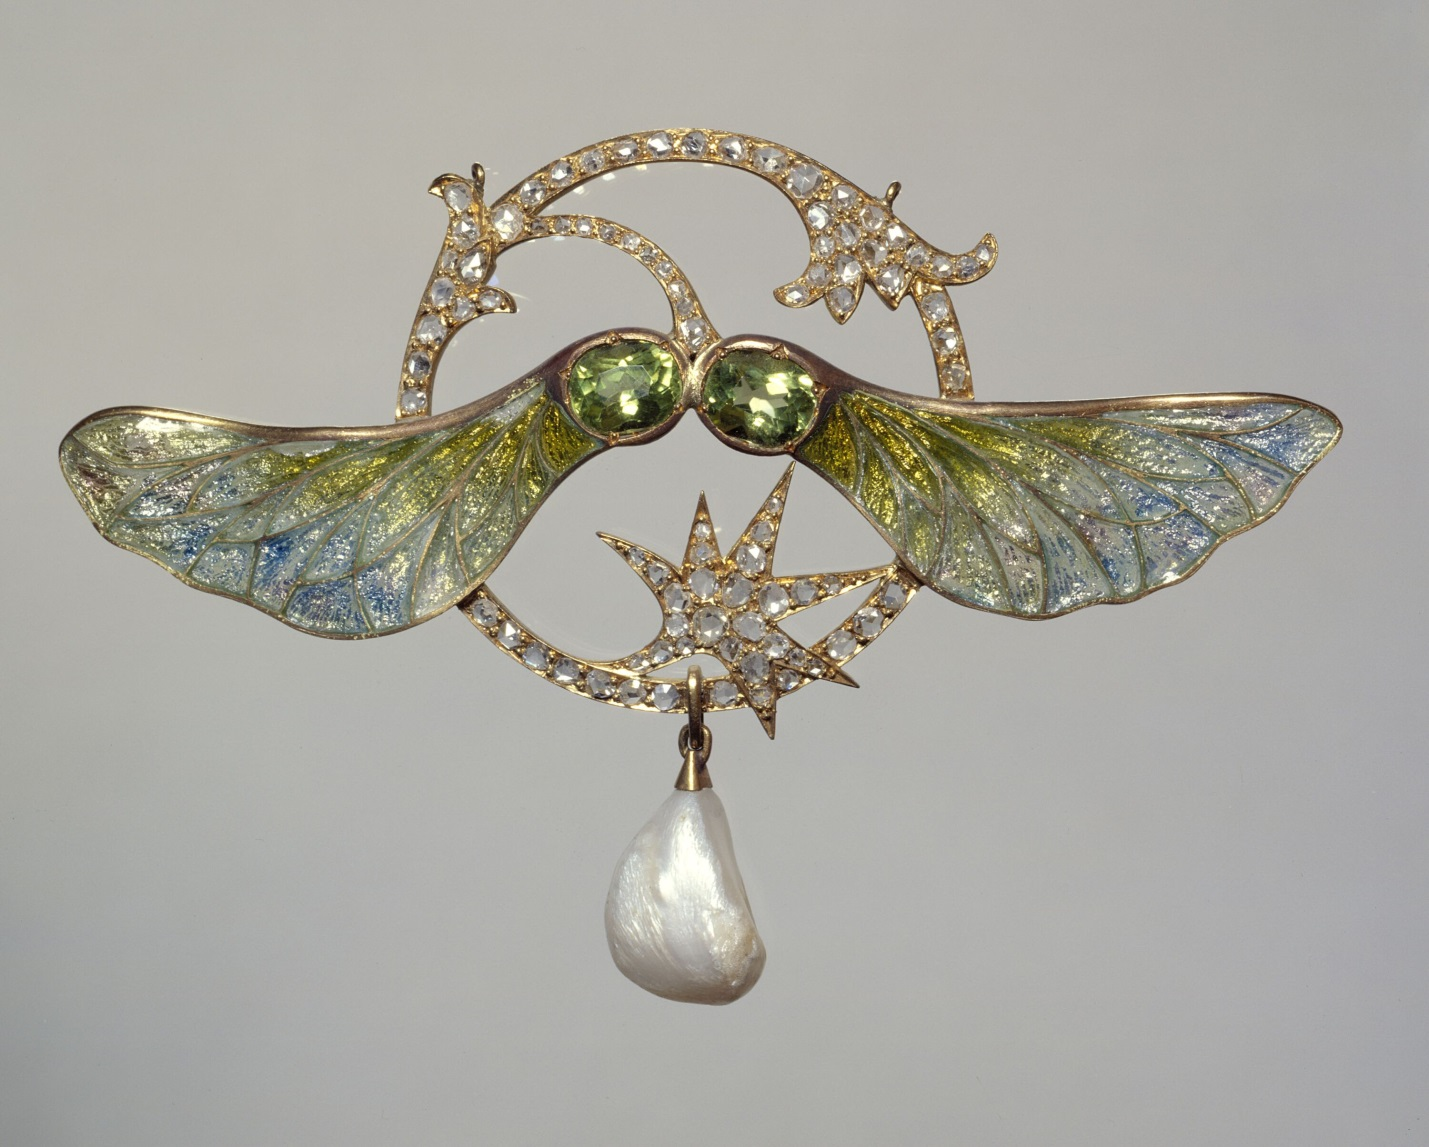 Georges Fouquet, 1862 to 1957, jeweler. Pendant Sycomore, circa 1905 to 1910. Gold pendant with enamel, gold, and pearl.